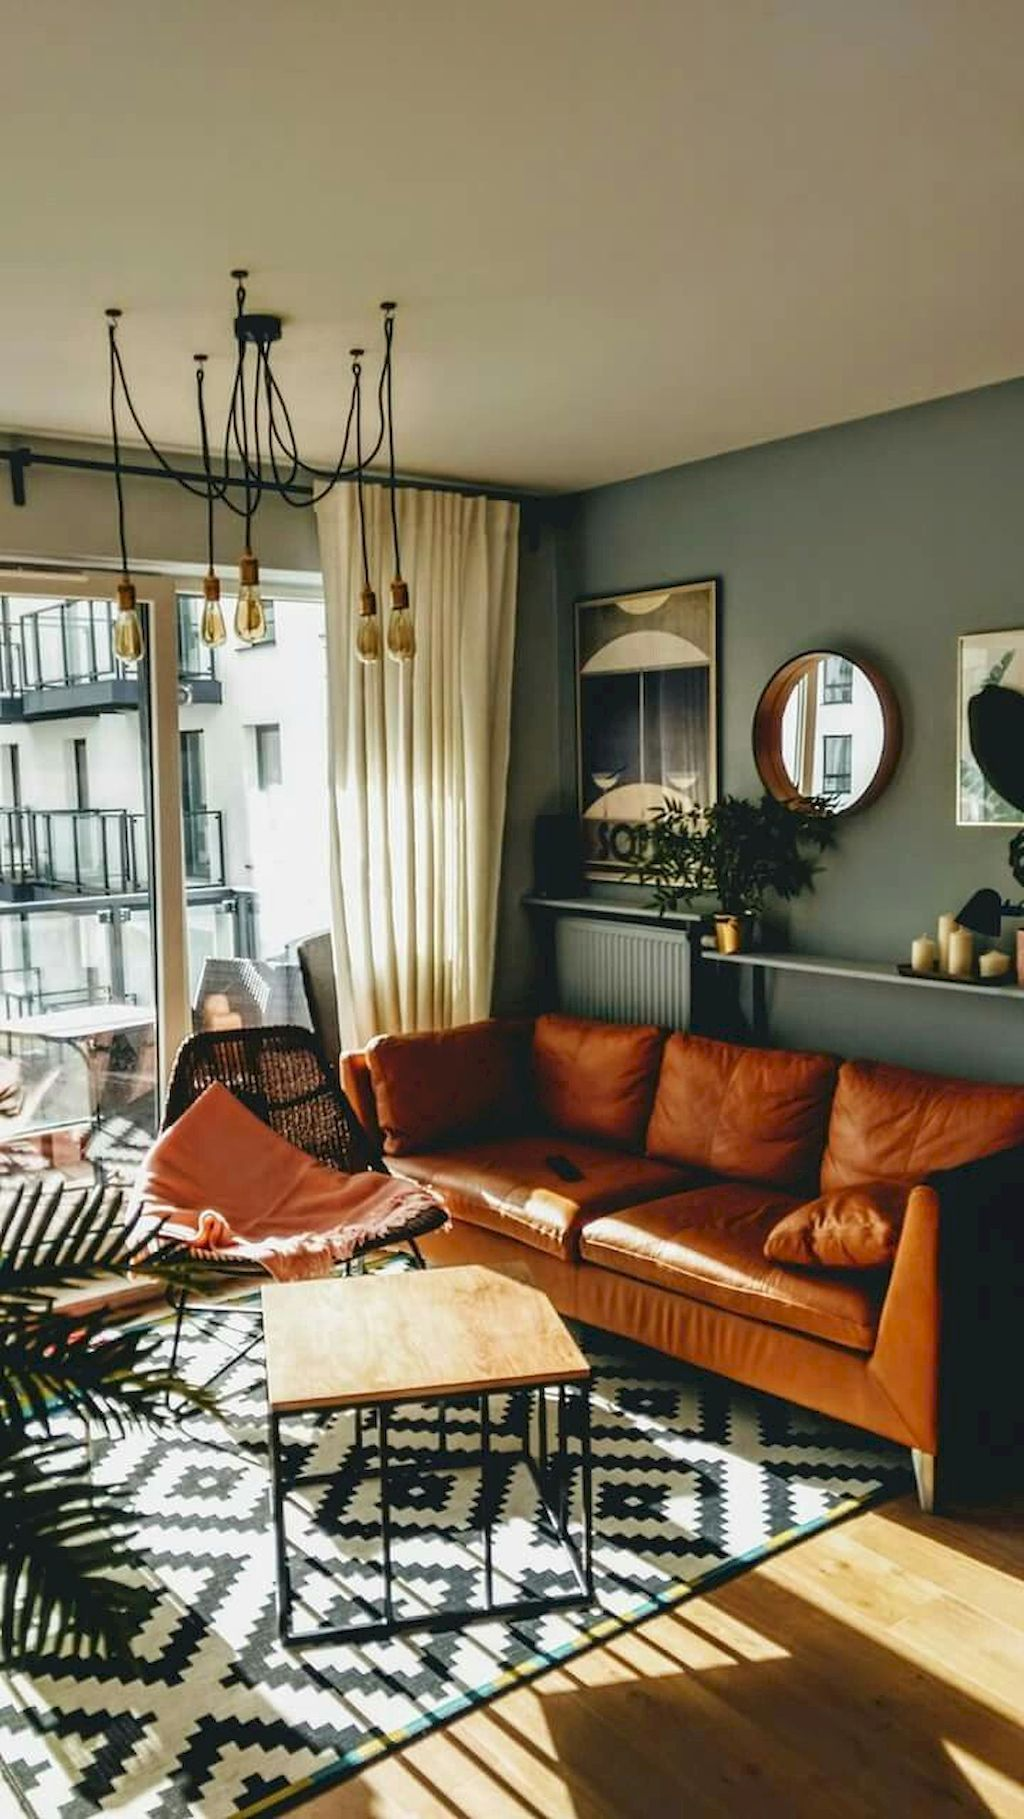 best interior wall accent ideas living room color on living room colors for walls id=70997